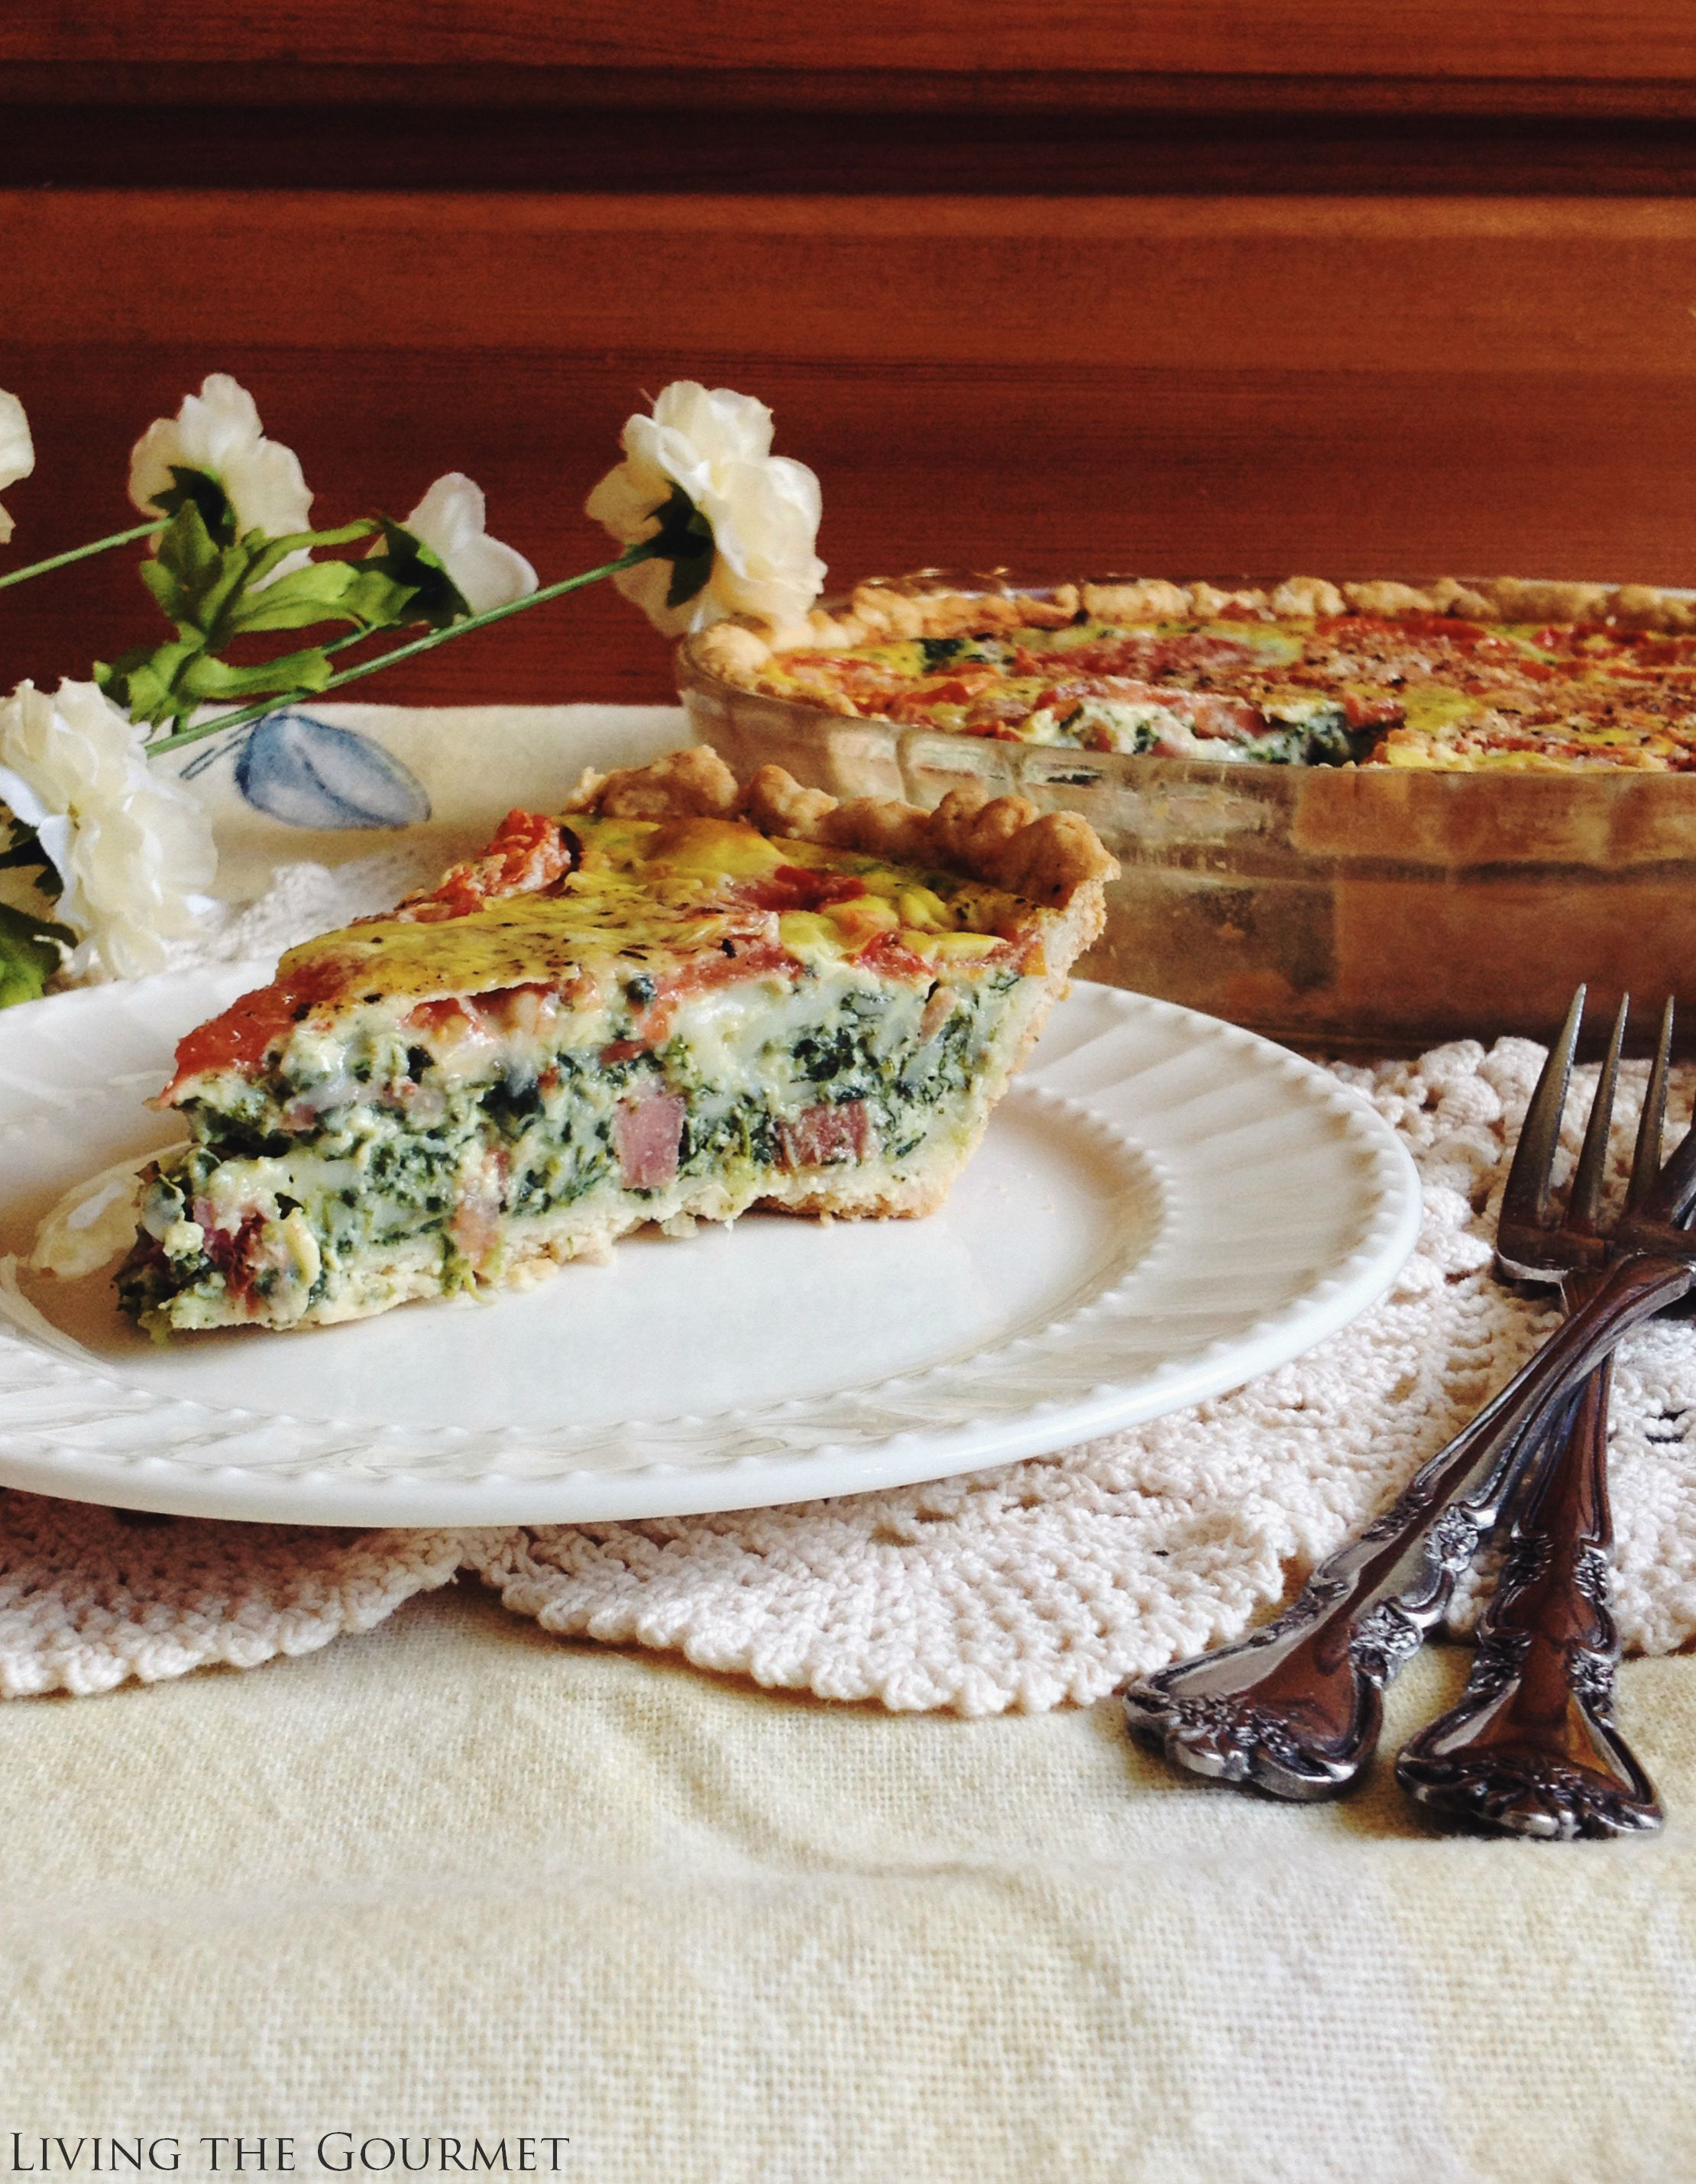 Living the Gourmet: Quiche Lorraine with Speck Ham